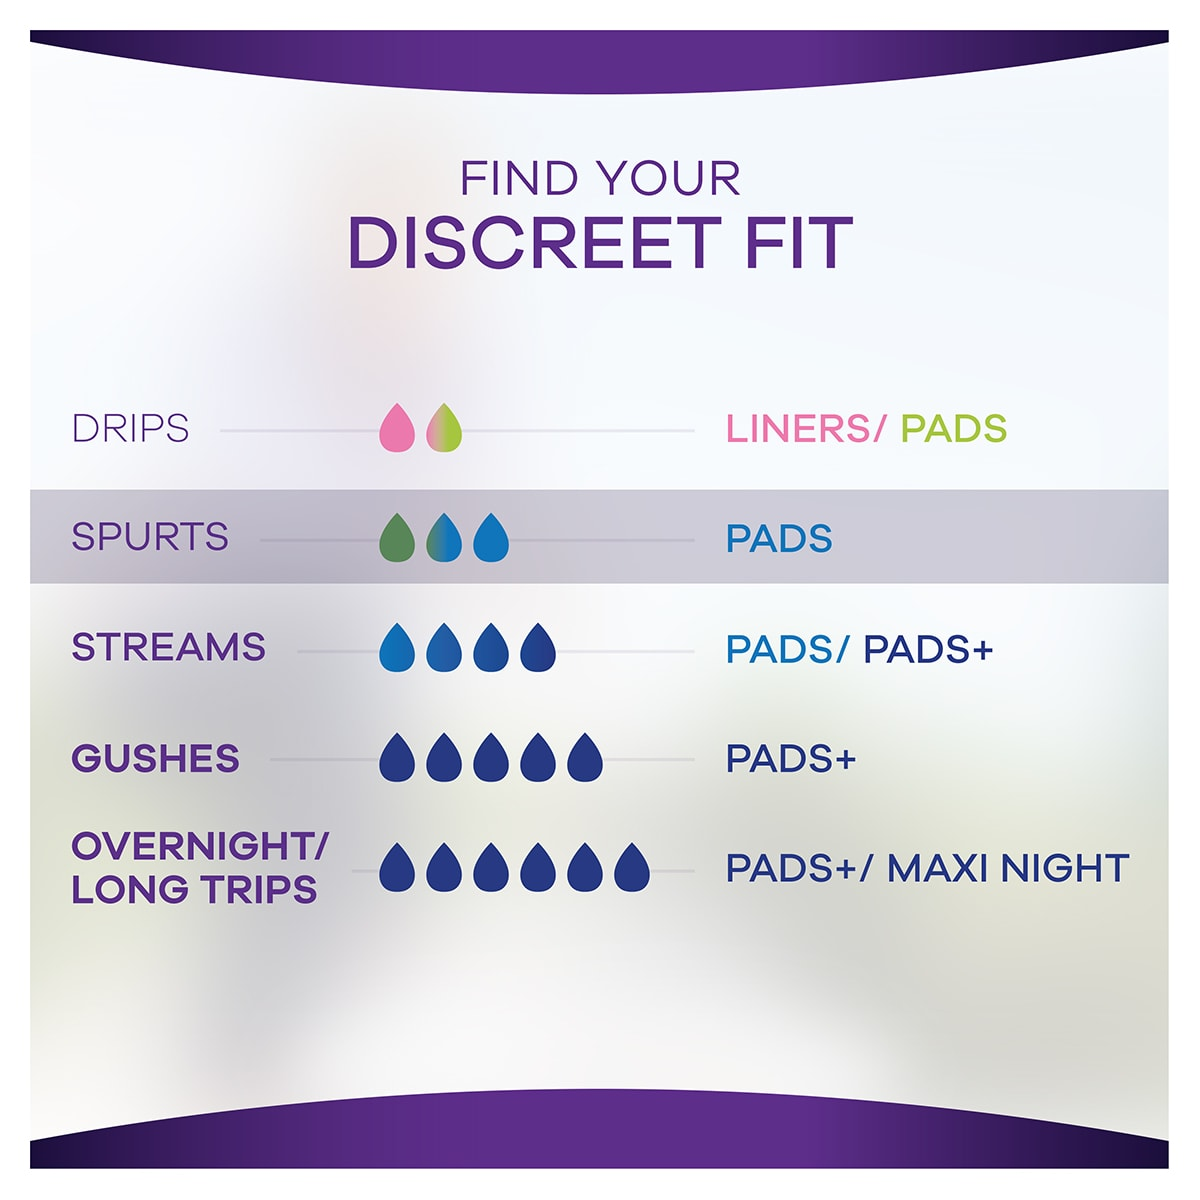 Always Discreet Pads Find Your Discreet Fit Pads 1200x1200